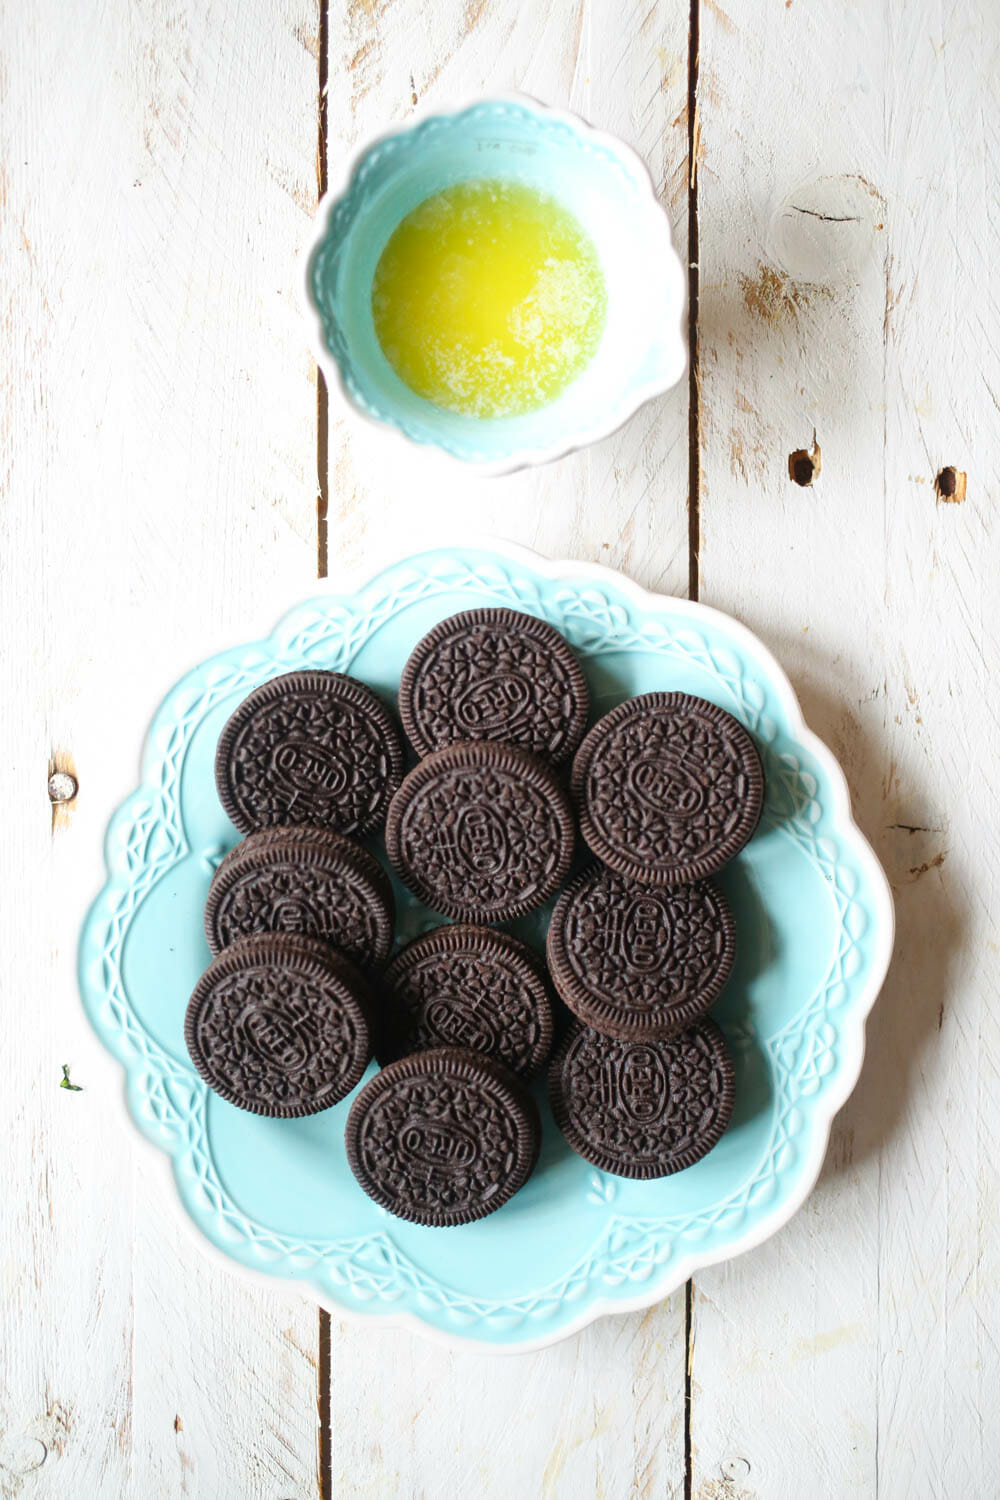 Oreos and butter for Mini Peppermint Chocolate Cheesecakes from Our Best Bites